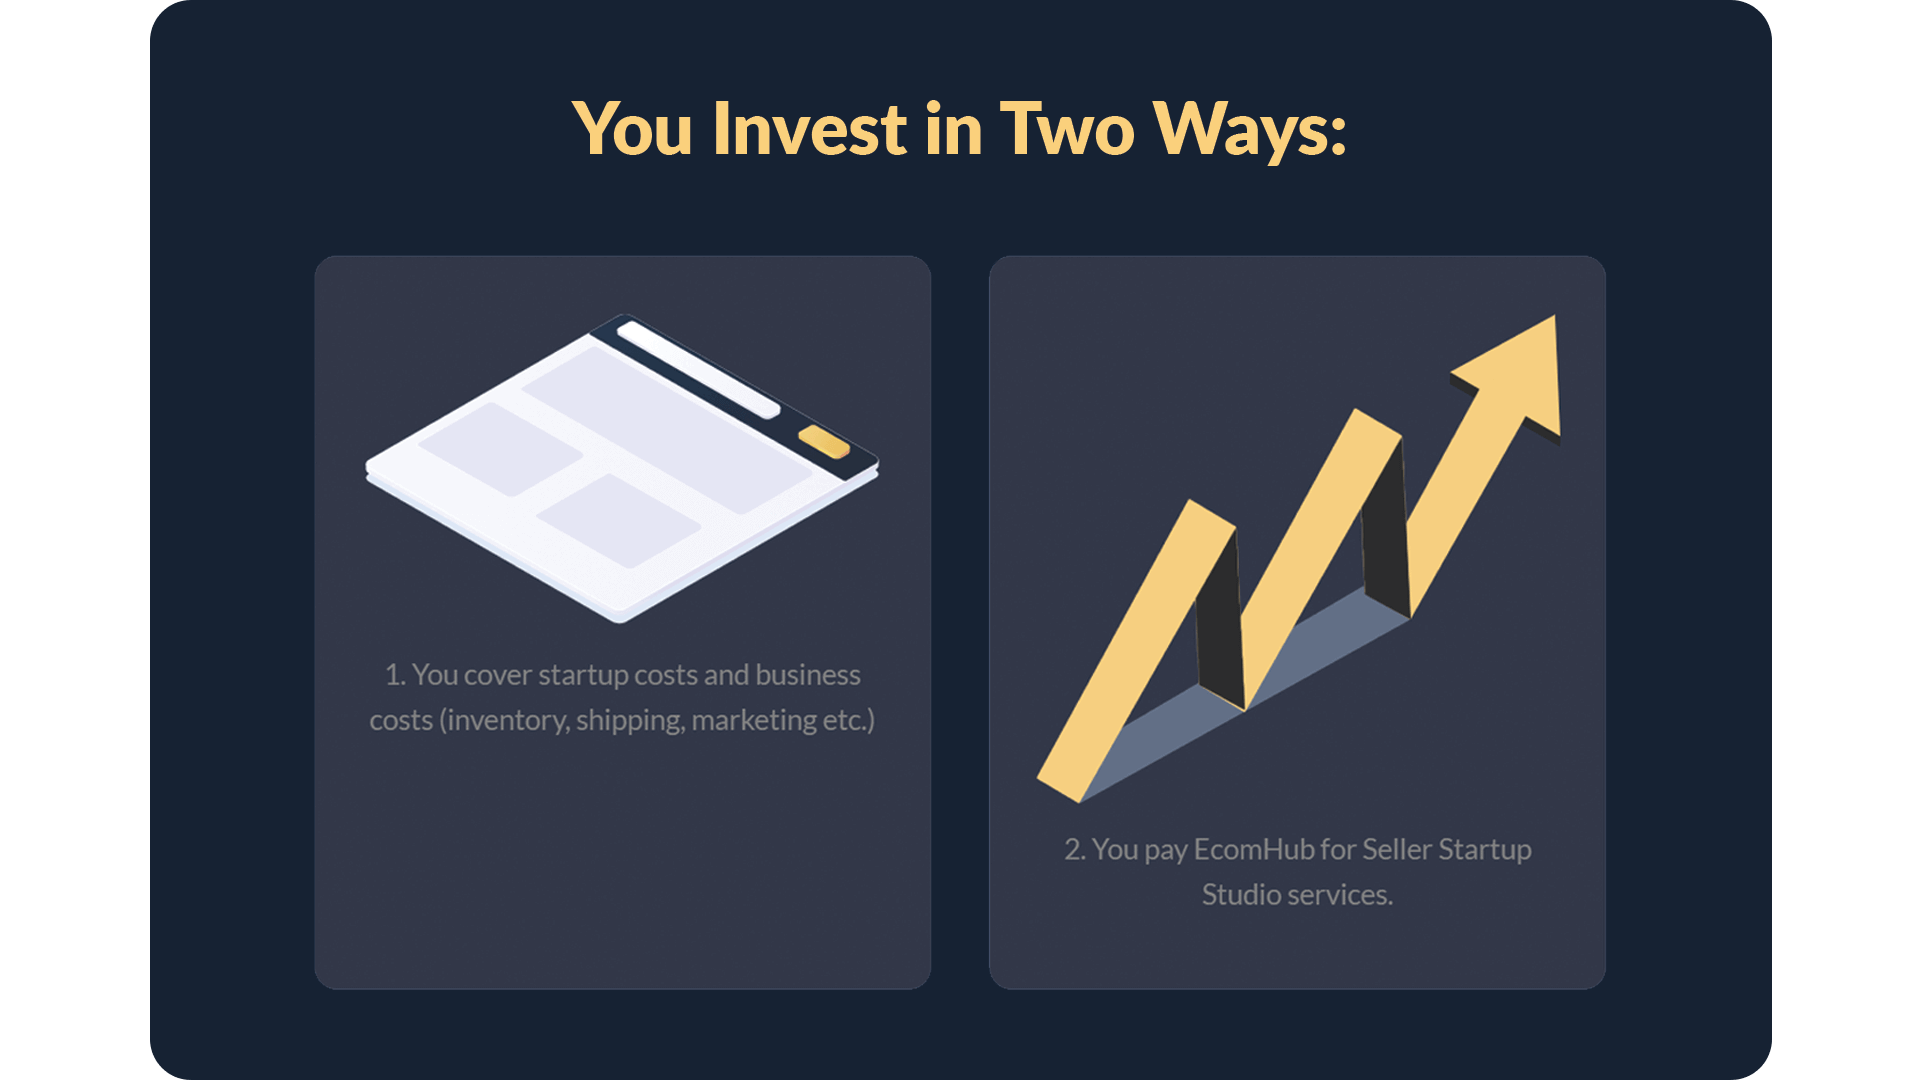 You invest in two ways. 1. You cover startup costs and business costs (inventory, shipping, marketing, etc.). 2. You pay EcomHub for Seller Startup Studio Services.